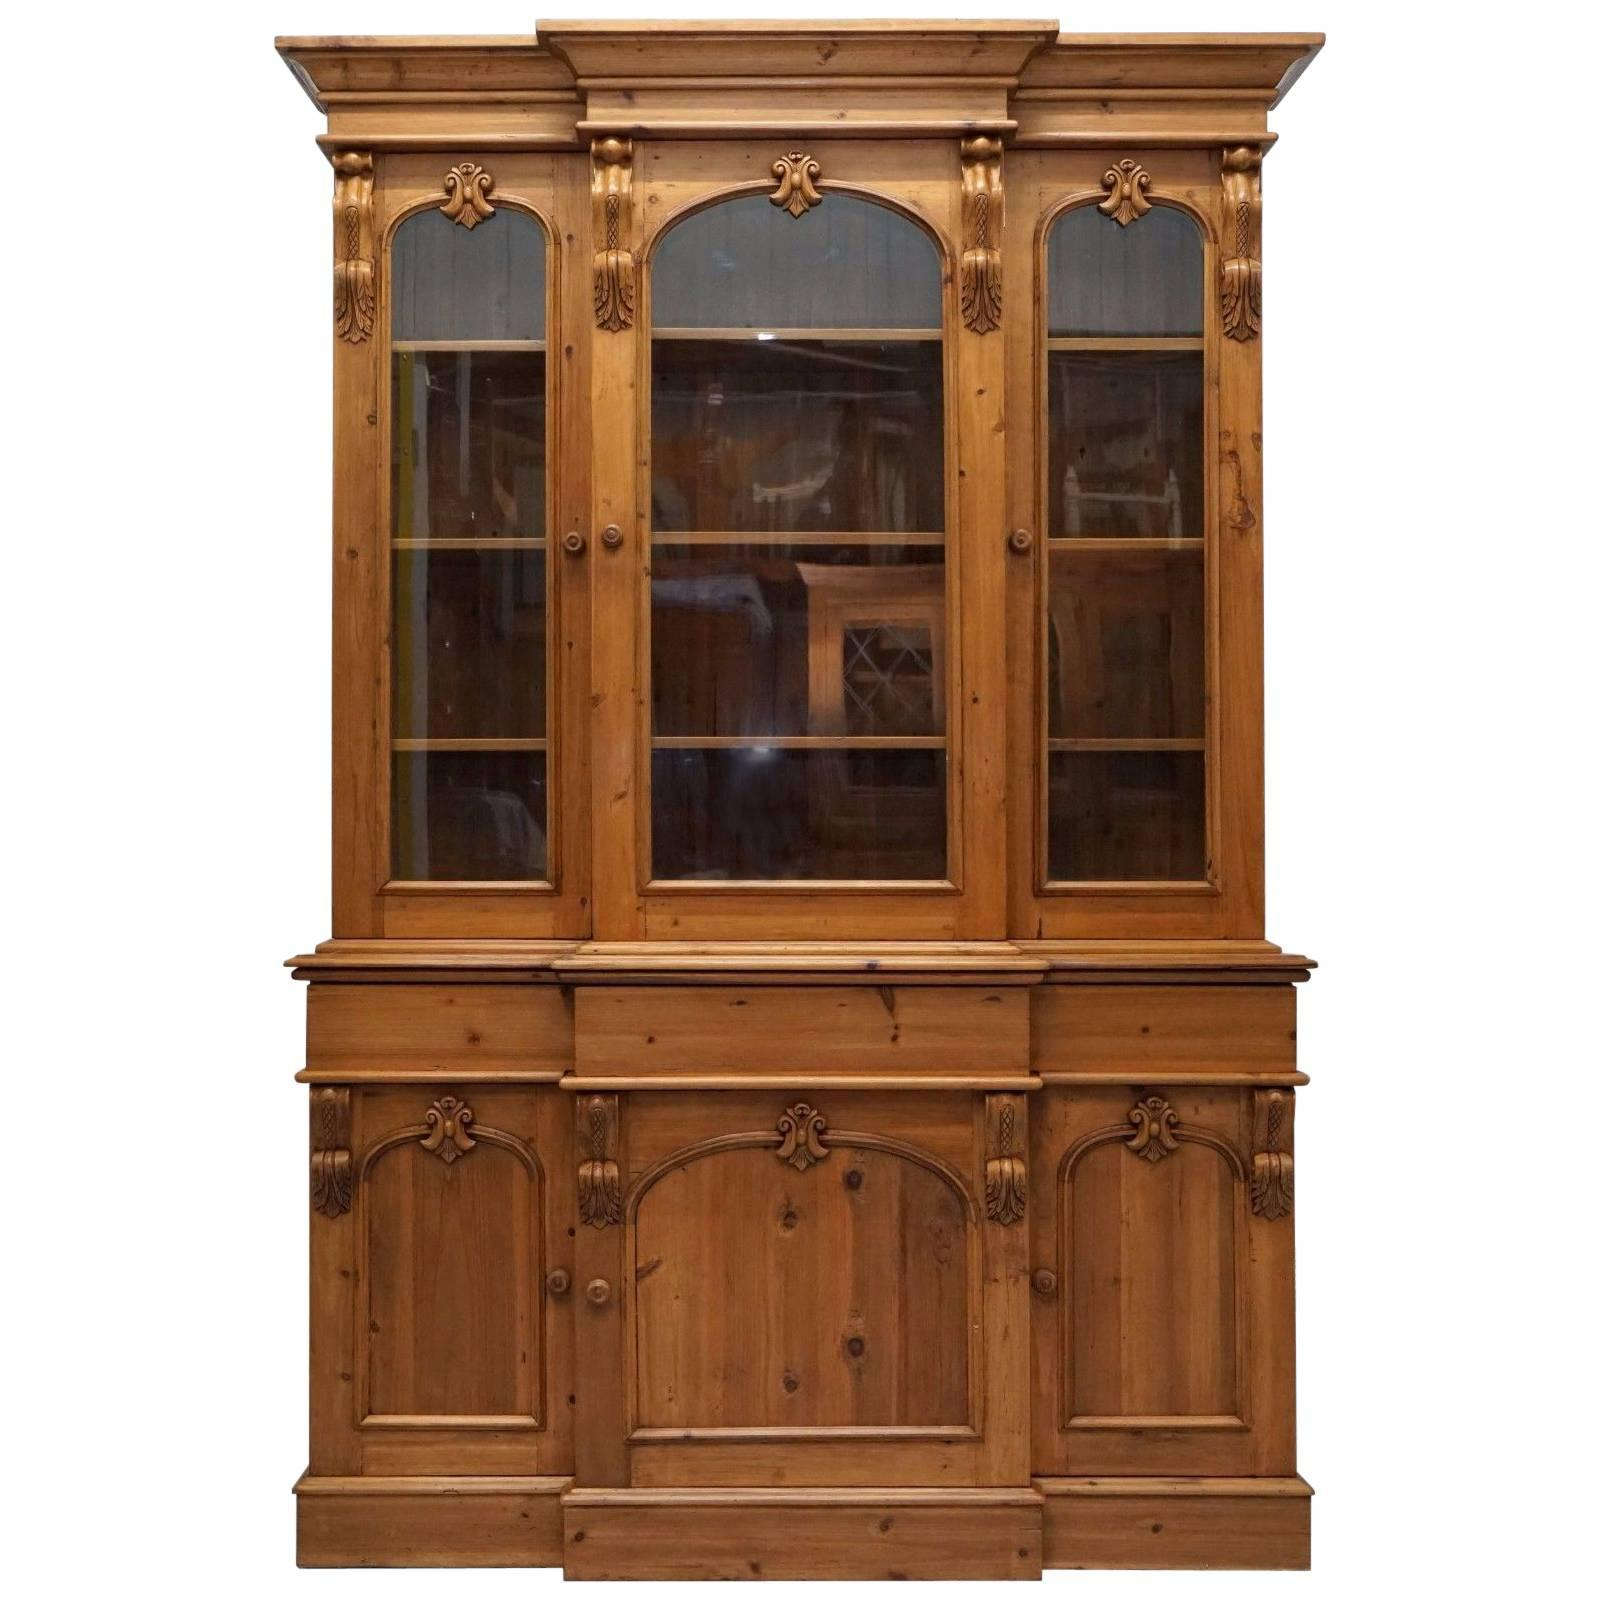 Antique English Pine Breakfront Hand-Carved Wood Welsh Bookcase Cabinet  sc 1 st  1stDibs & Large English Pine Bookcase Display Cabinet For Sale at 1stdibs